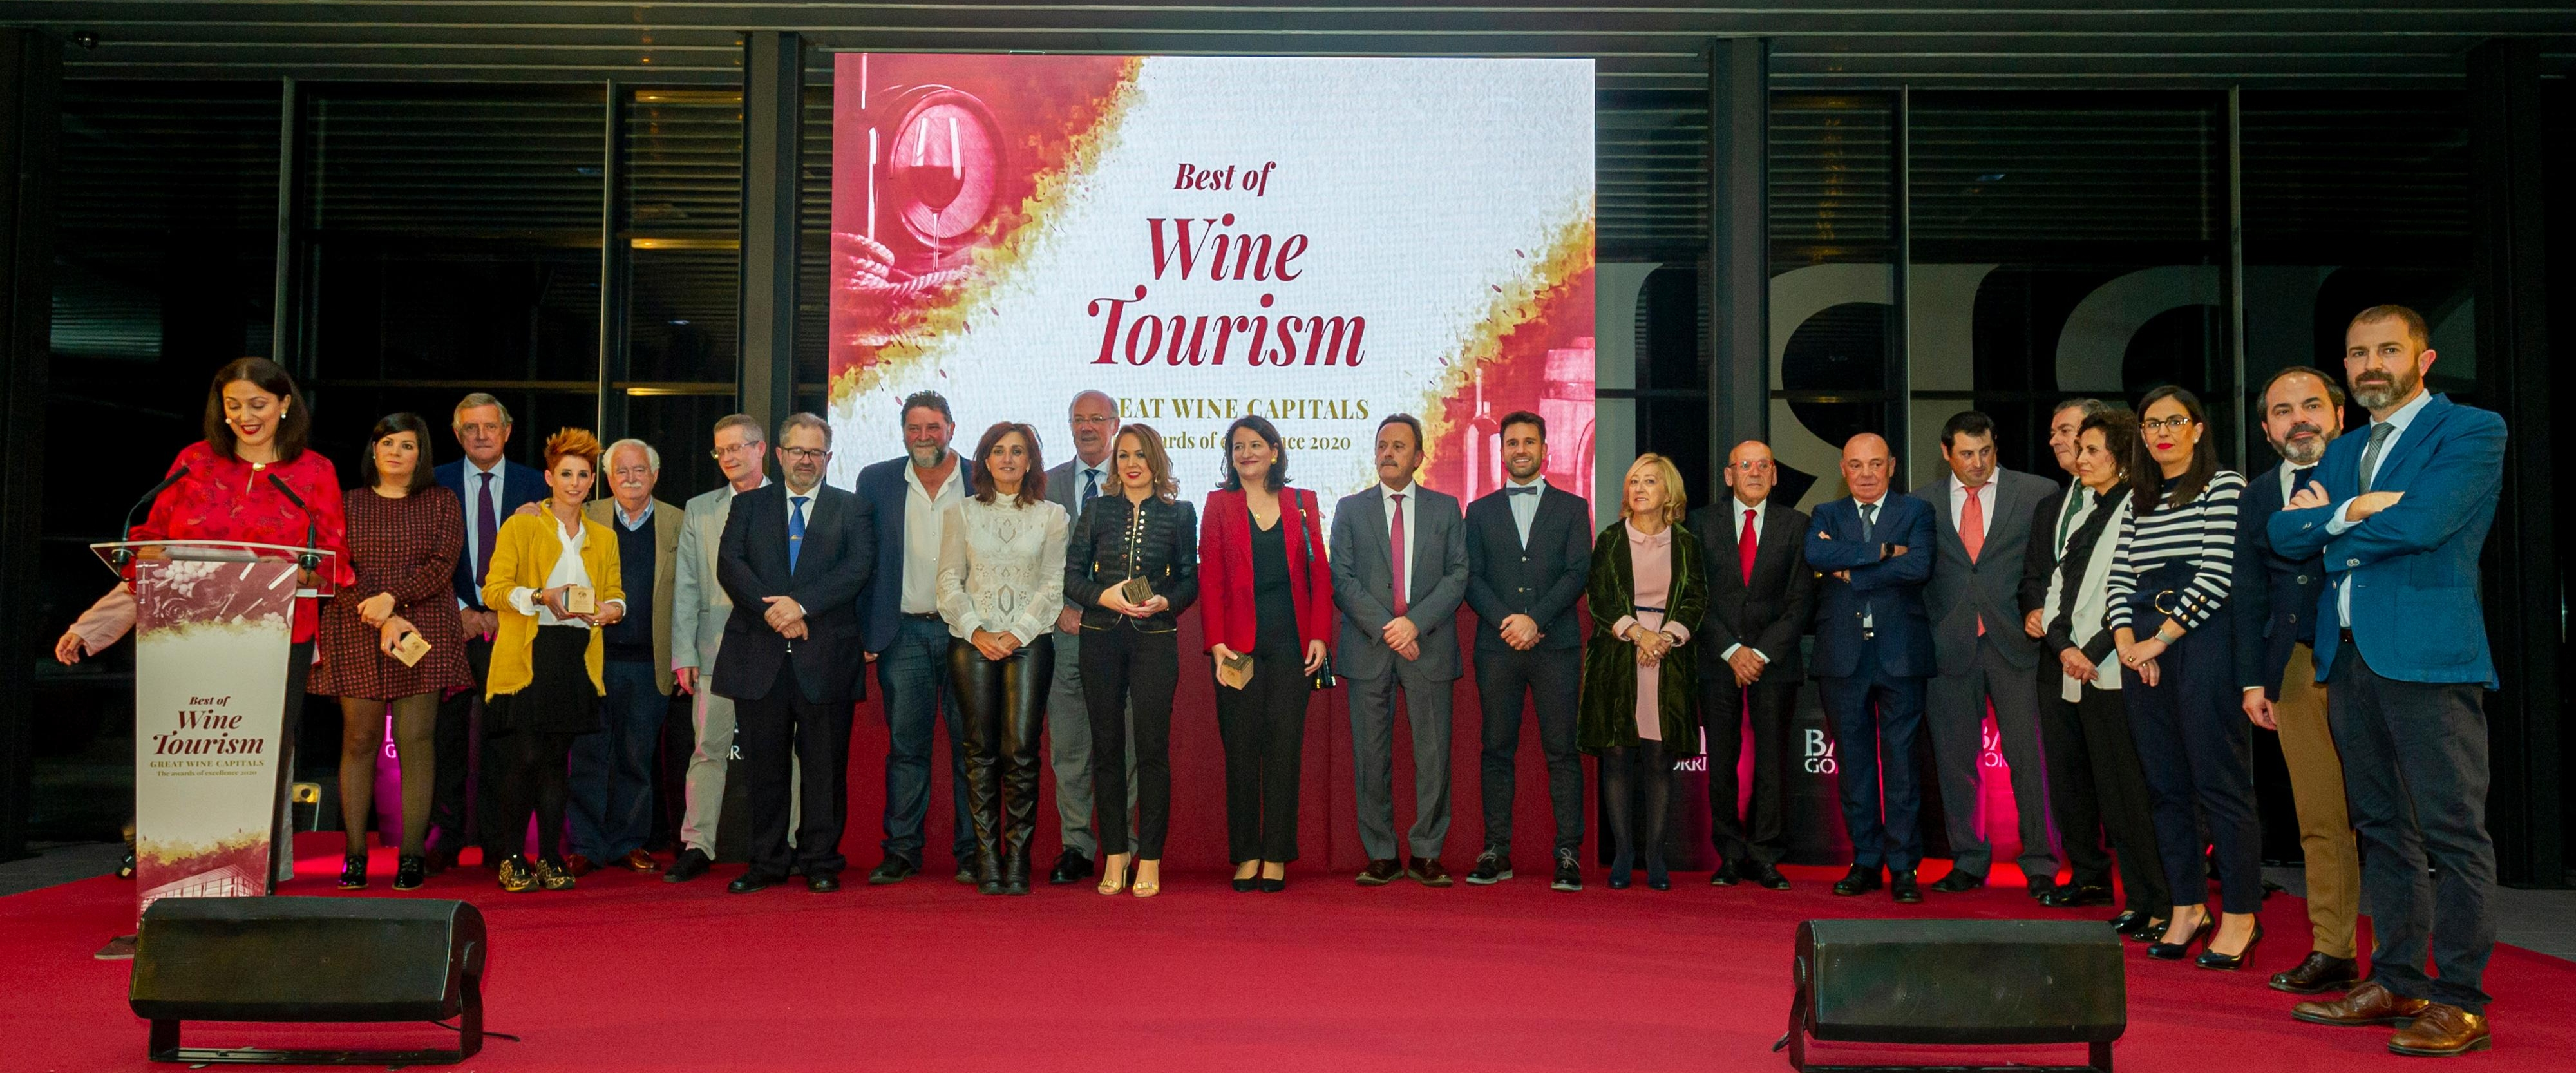 Best of, premios, enoturismo